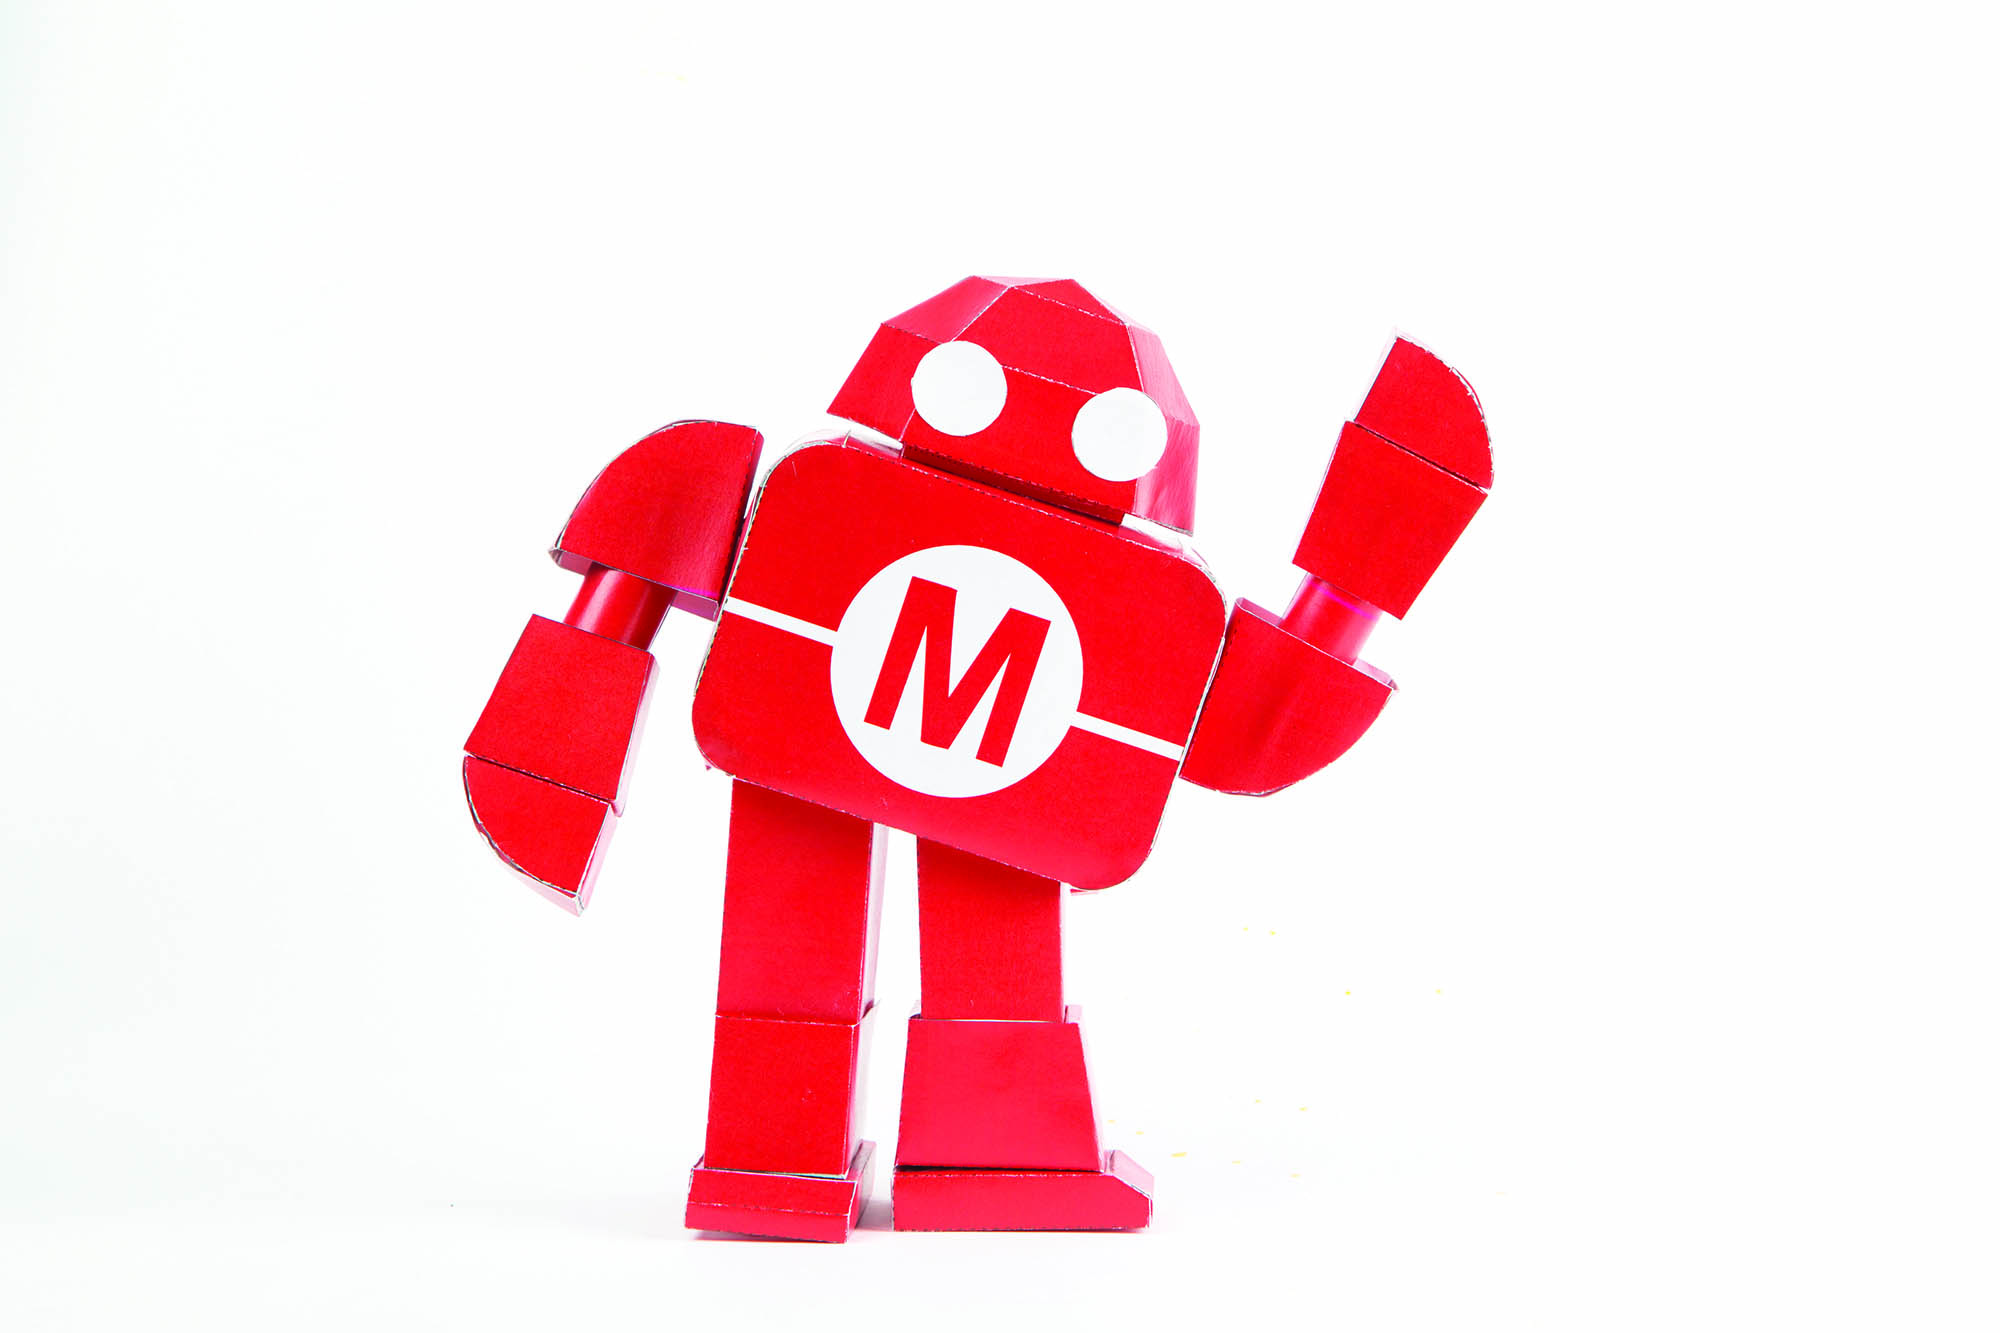 Papercraft projects how tos and more for makers make diy posable papercraft makey mascot altavistaventures Choice Image